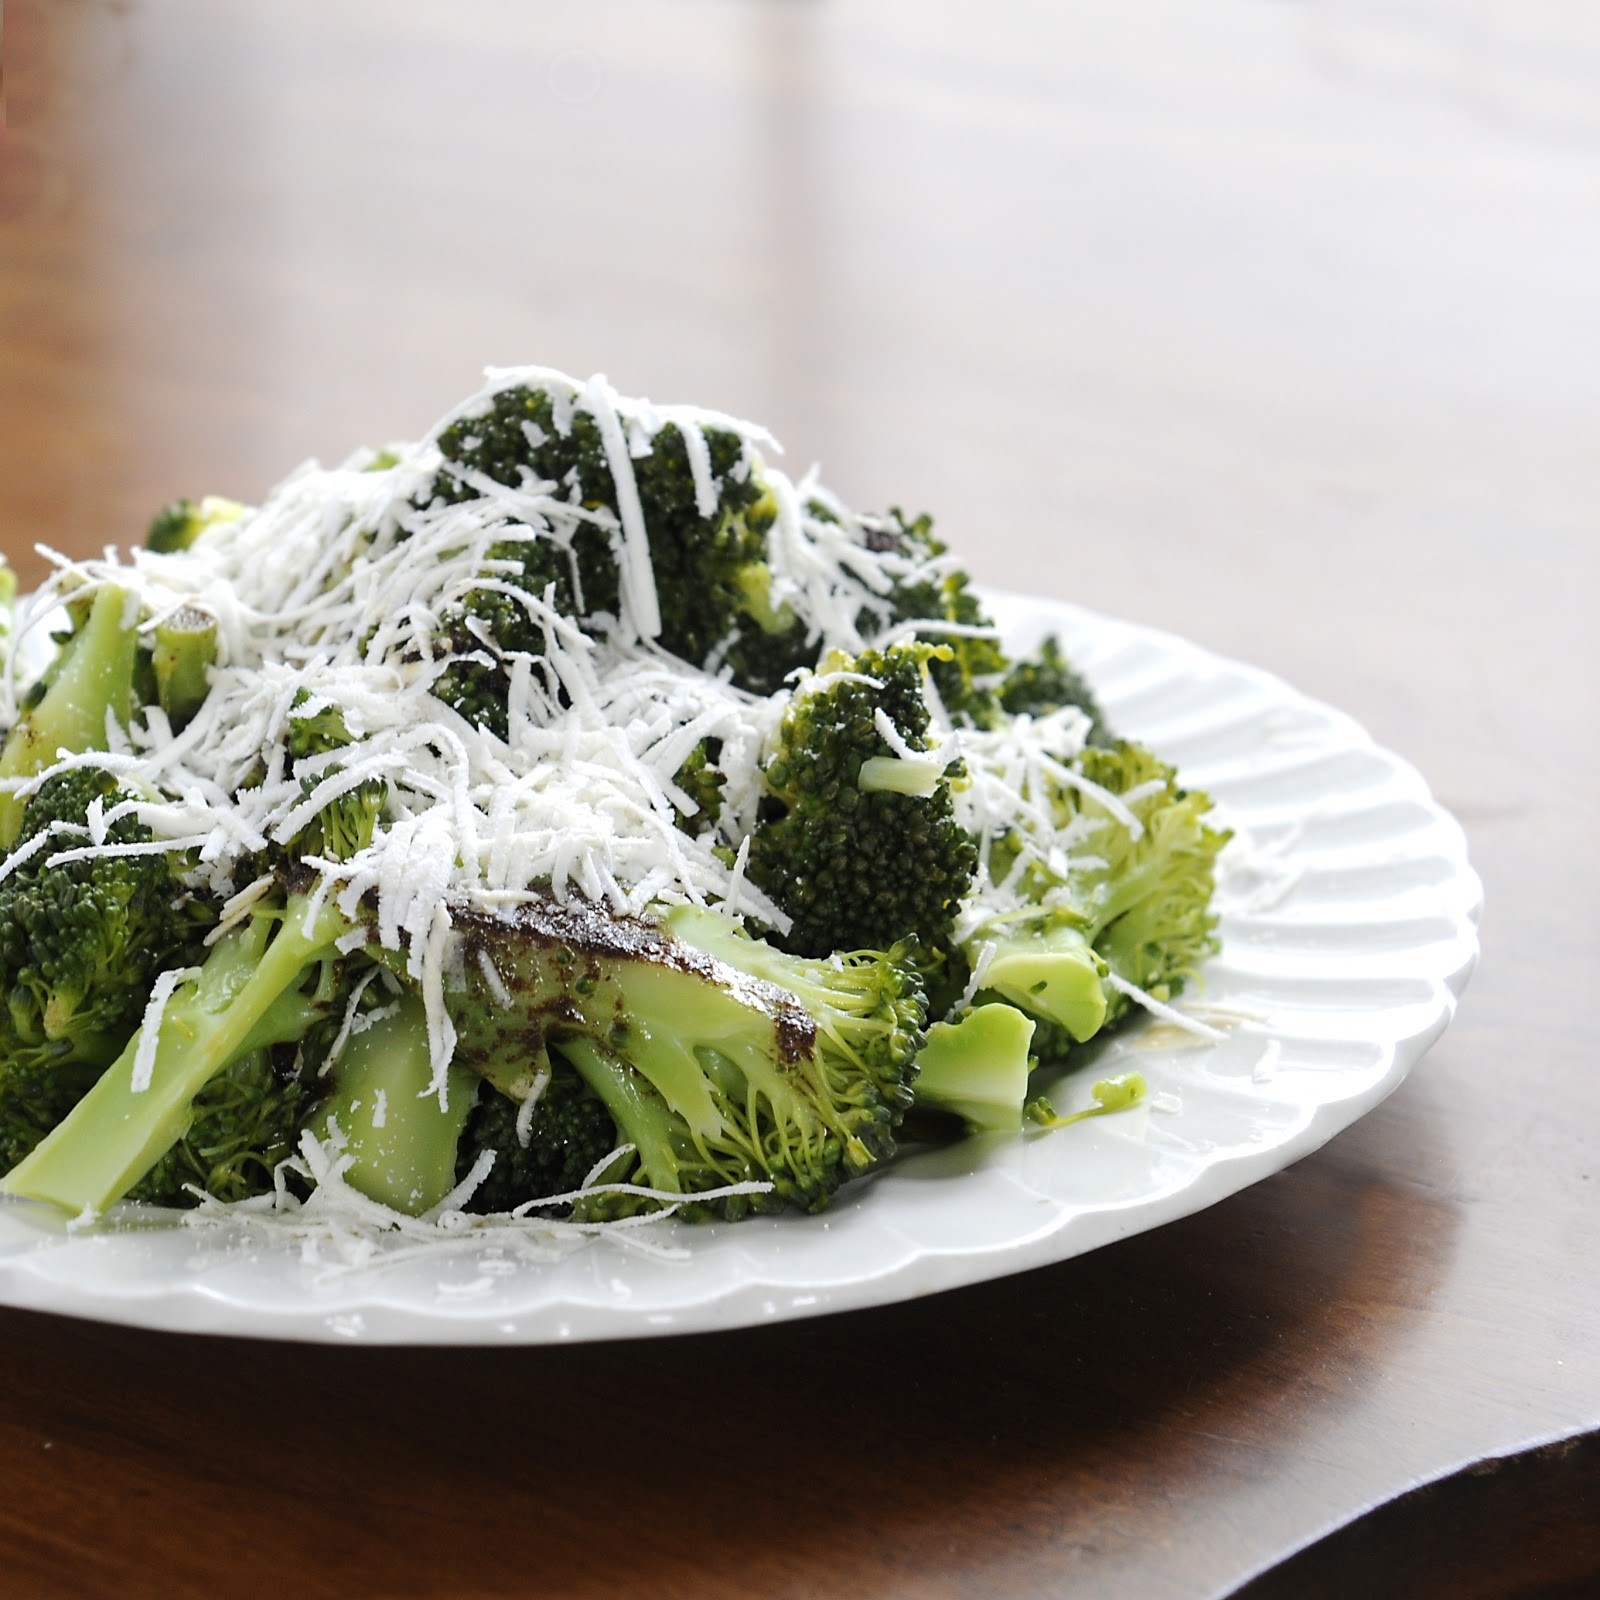 Recipe: Brown Butter Broccoli with Mizithra Cheese